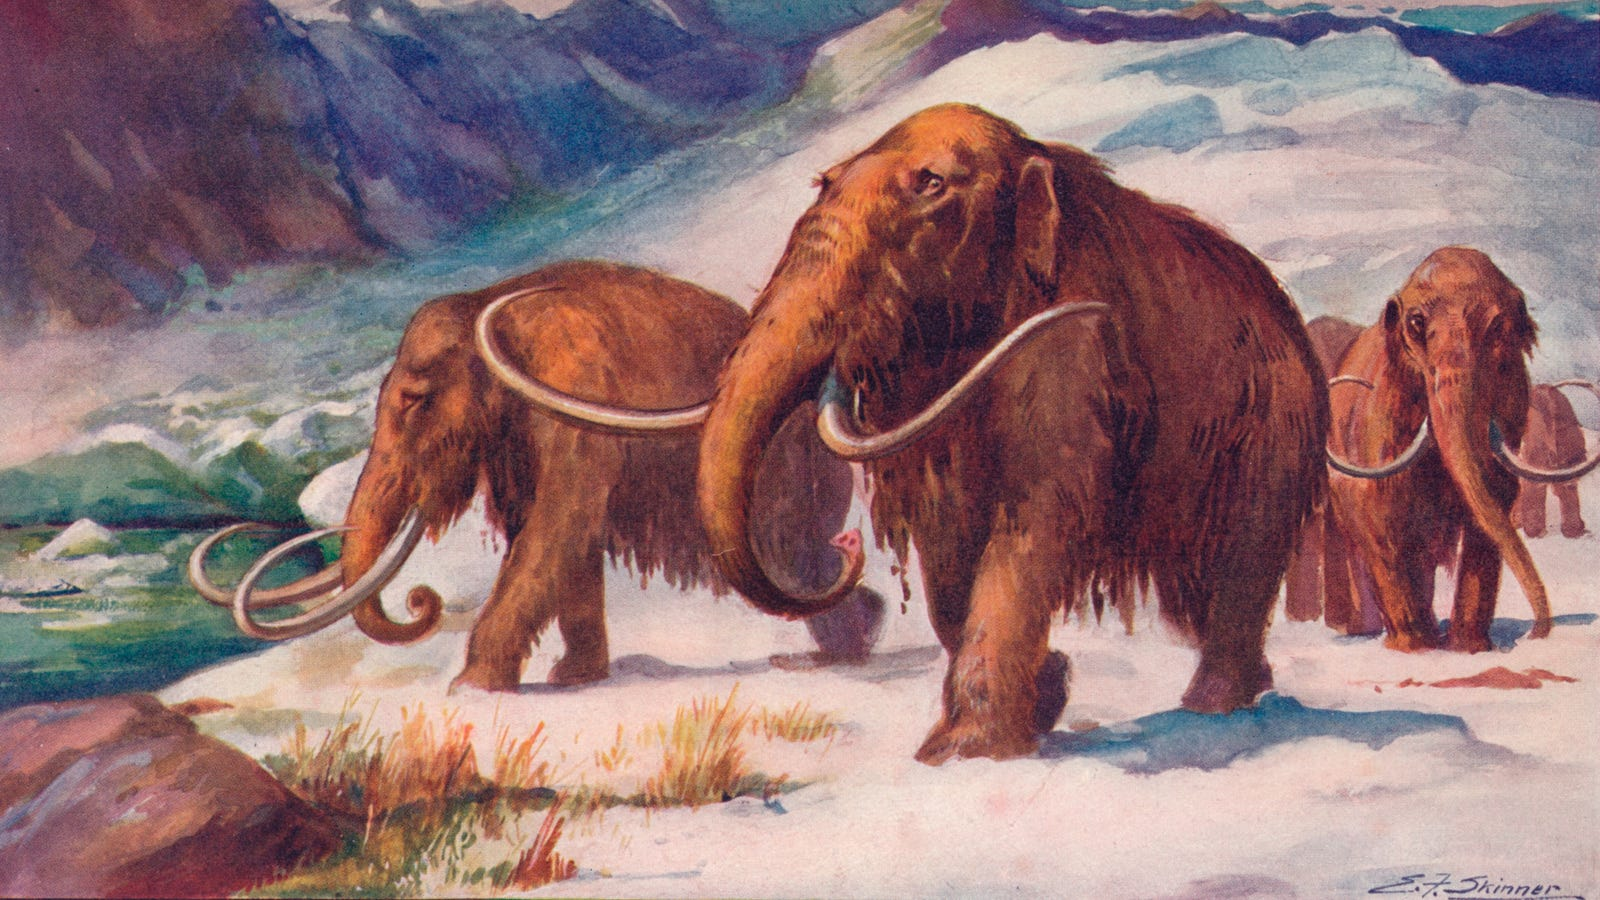 Science finds a way to bring back extinct animals